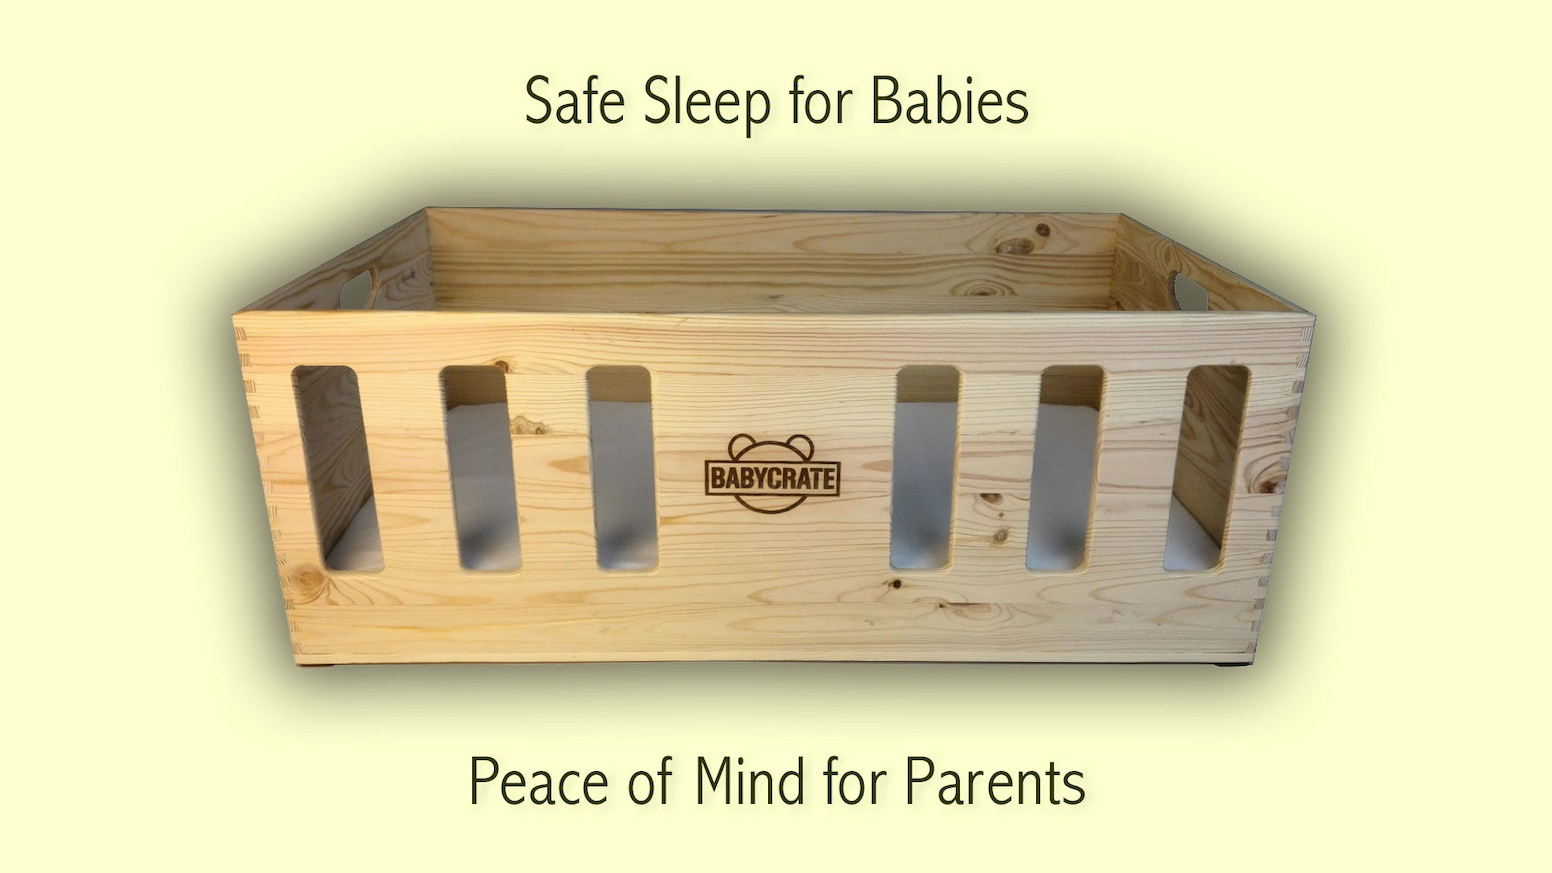 The BabyCrate is a newborn baby safe sleep bed with a focus on safety, practicality and natural materials.